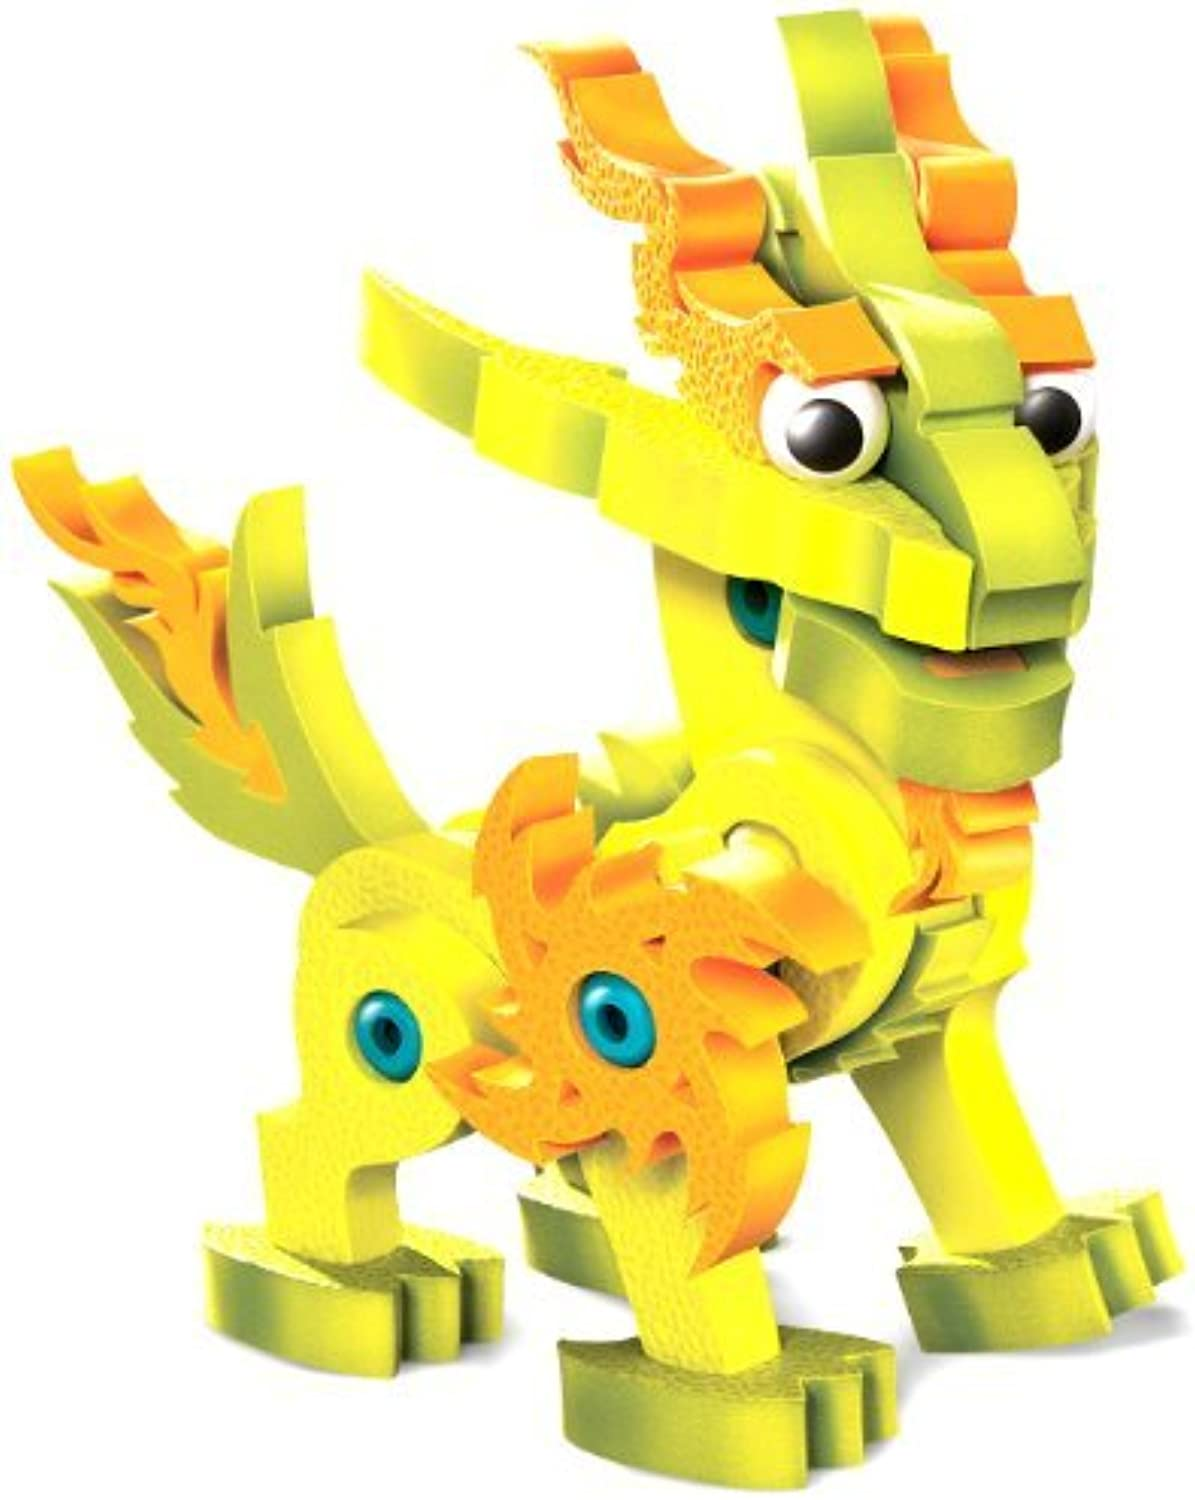 Bloco Toys Lightnix Dragon of The Light Building Kit by Bloco Toys inc.